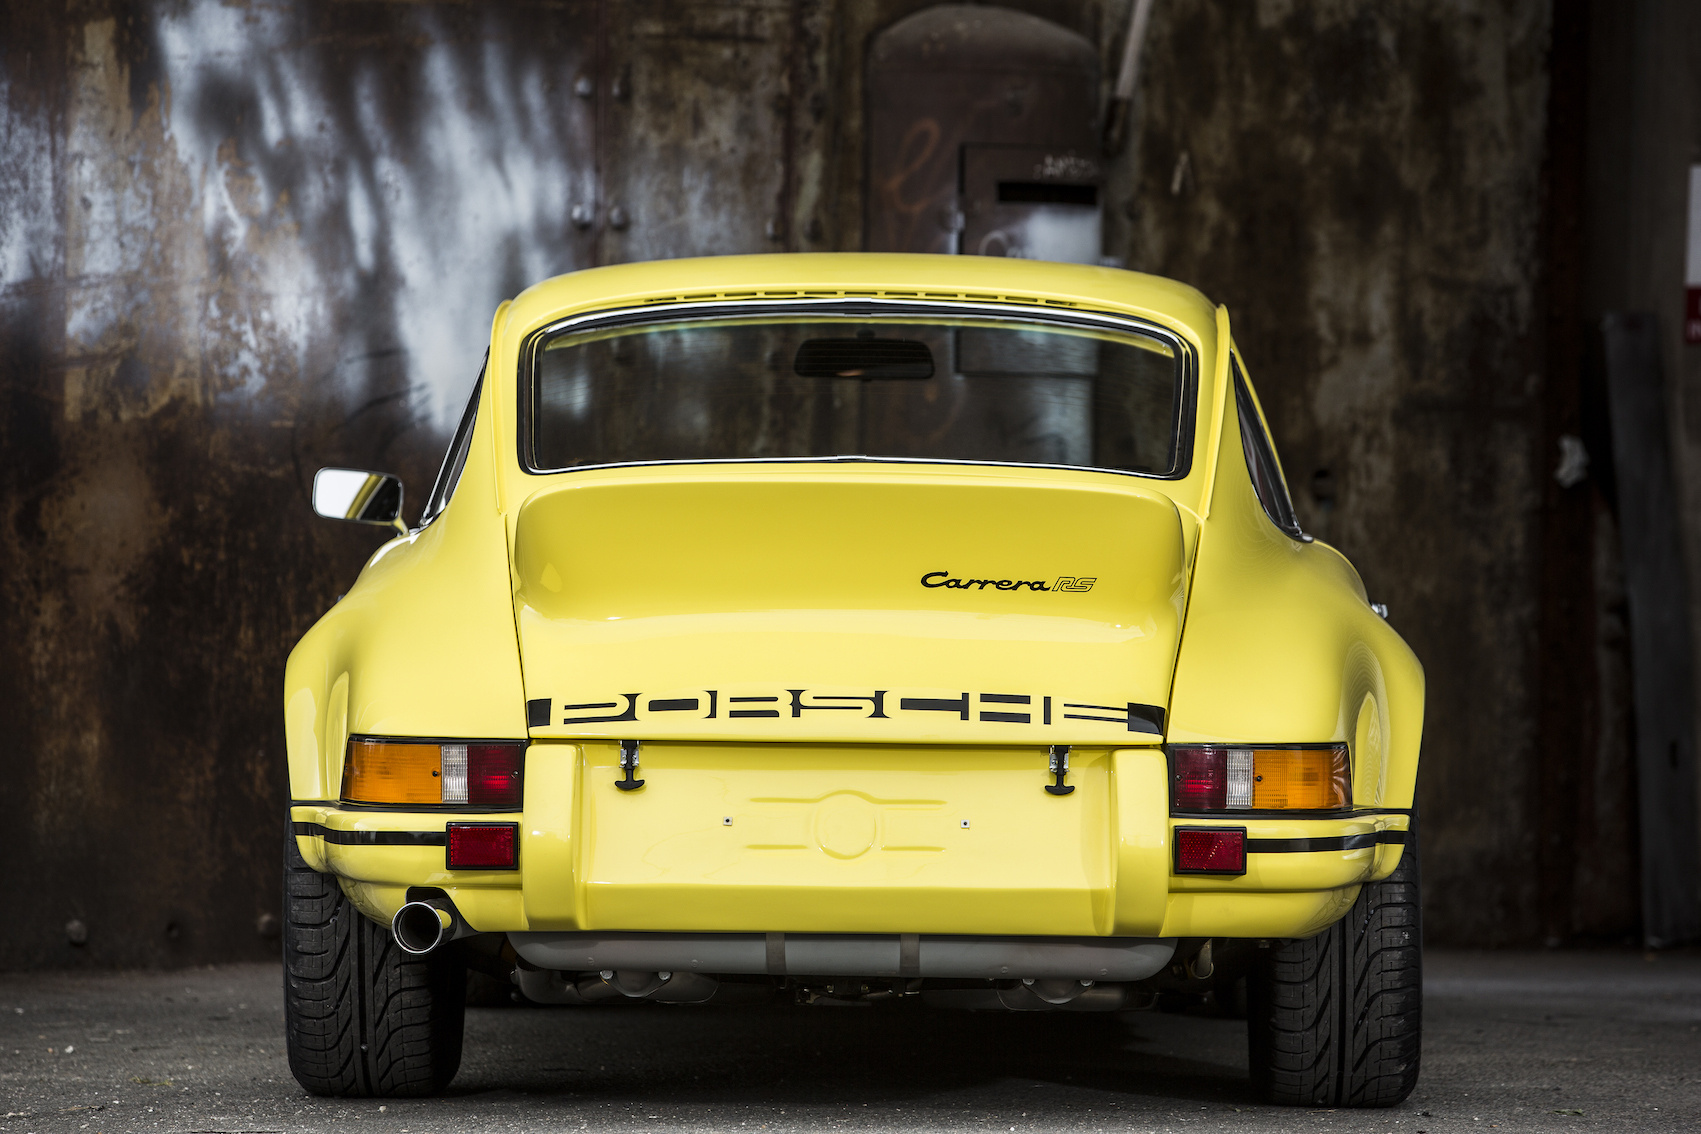 In Pictures: The 1973 Porsche 911 2.7 RS Lightweight